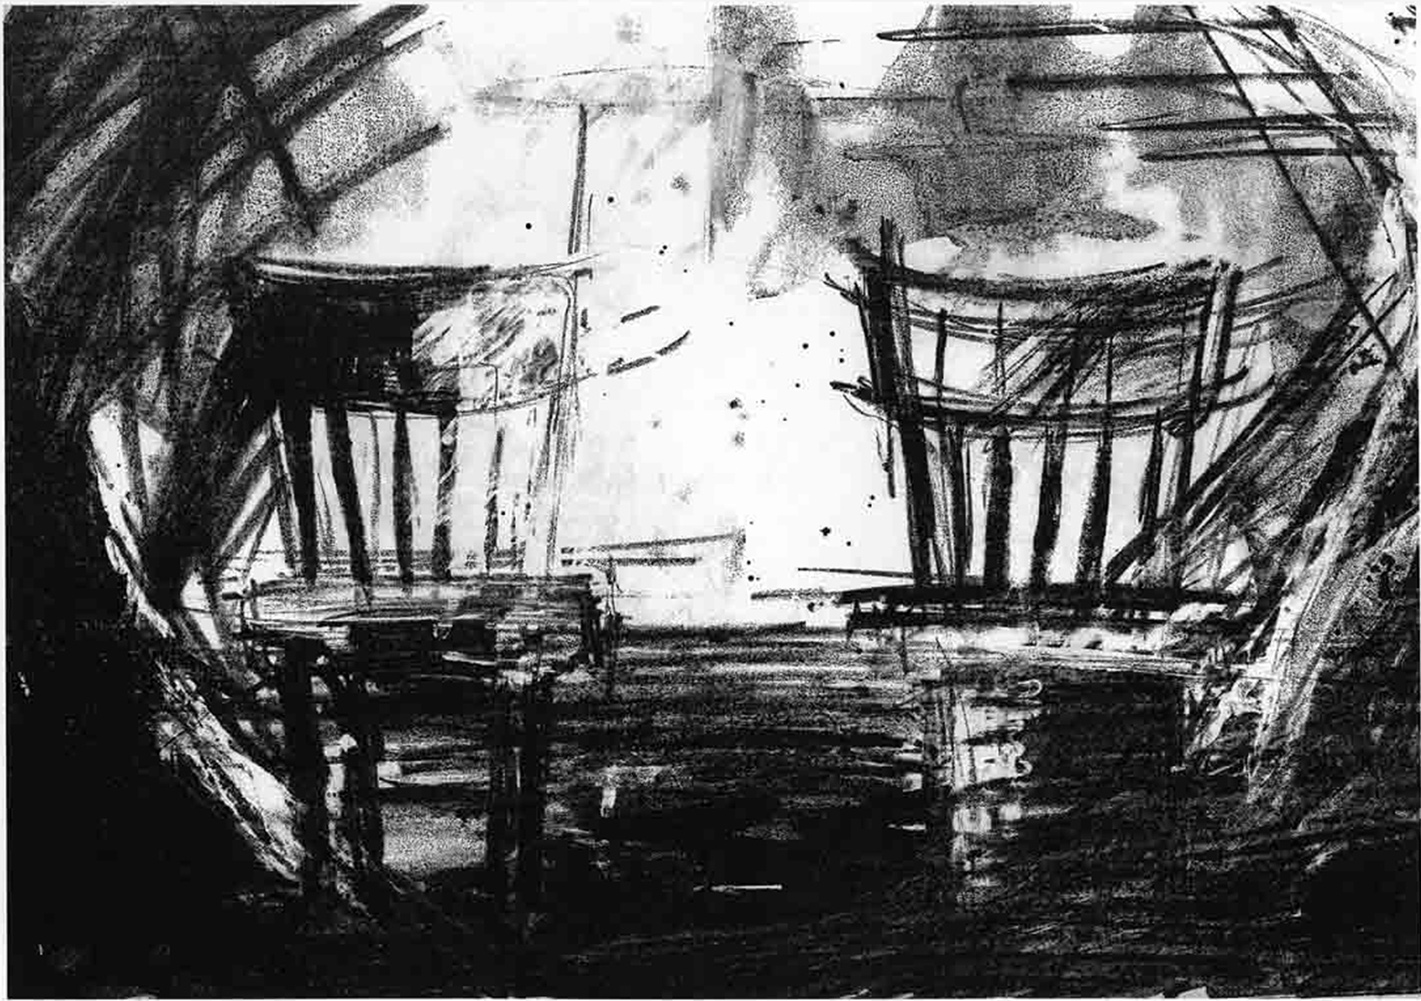 Chairs. Lithograph. From my archives.